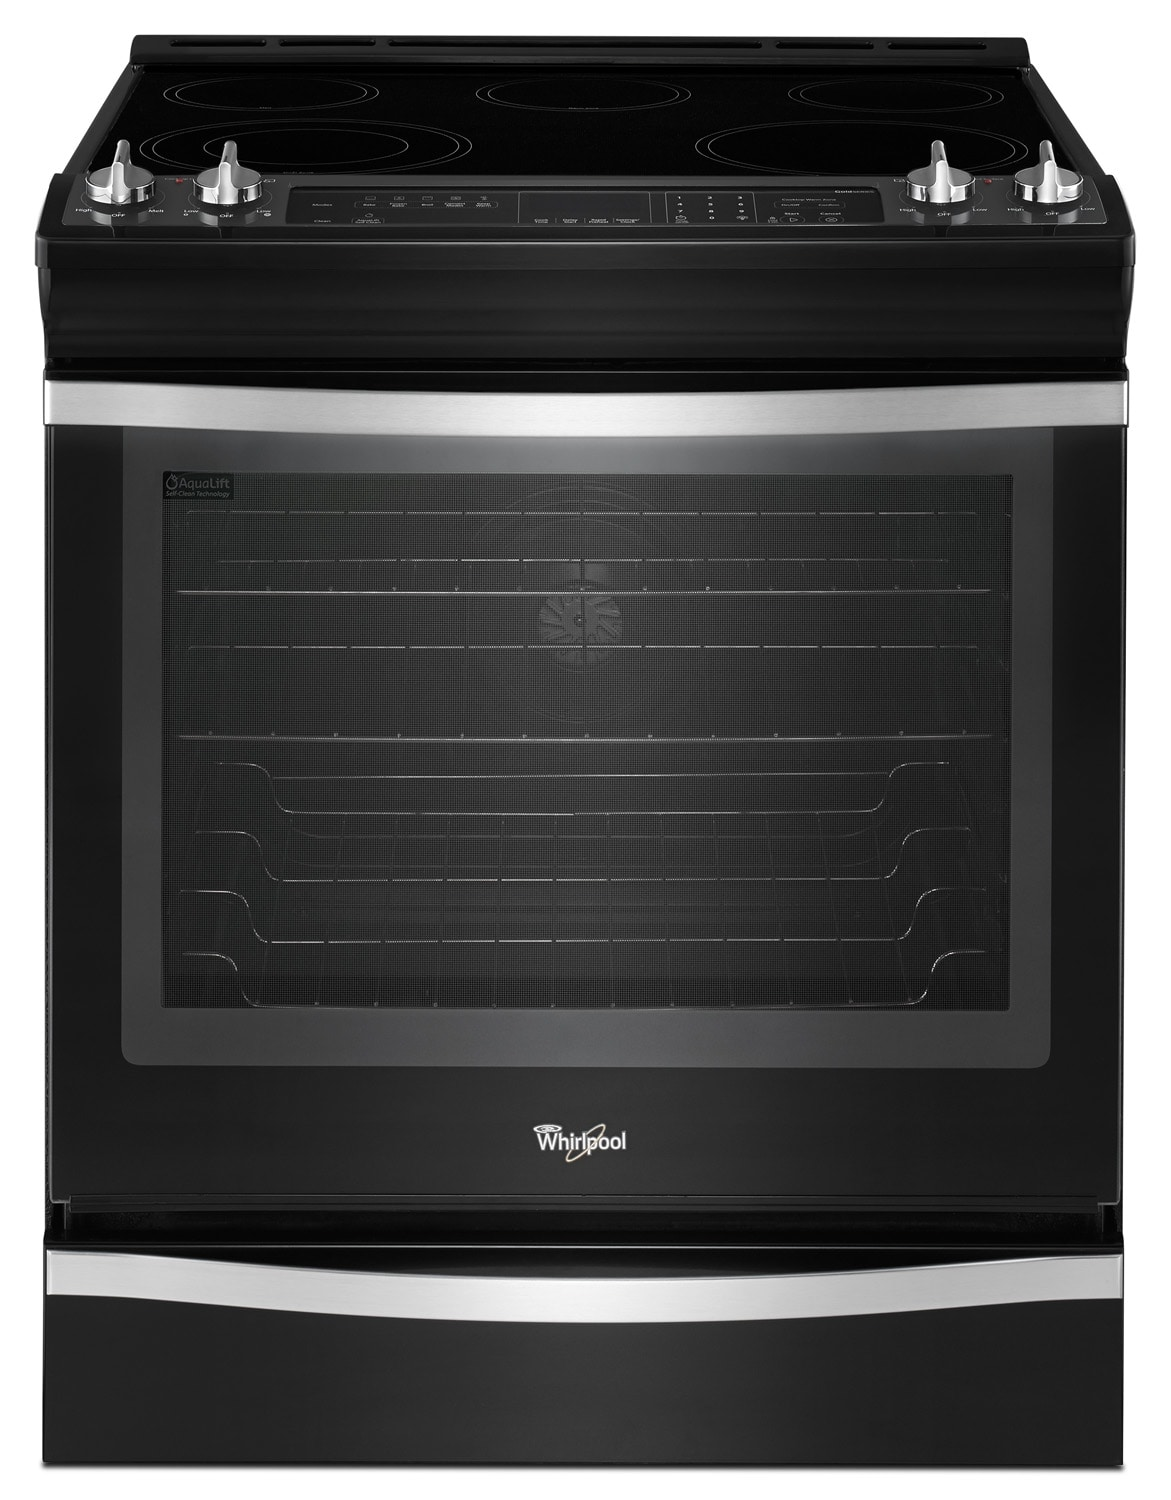 Cooking Products - Whirlpool Black Ice Slide-In Electric Range (6.2 Cu. Ft.) - YWEE760H0DE